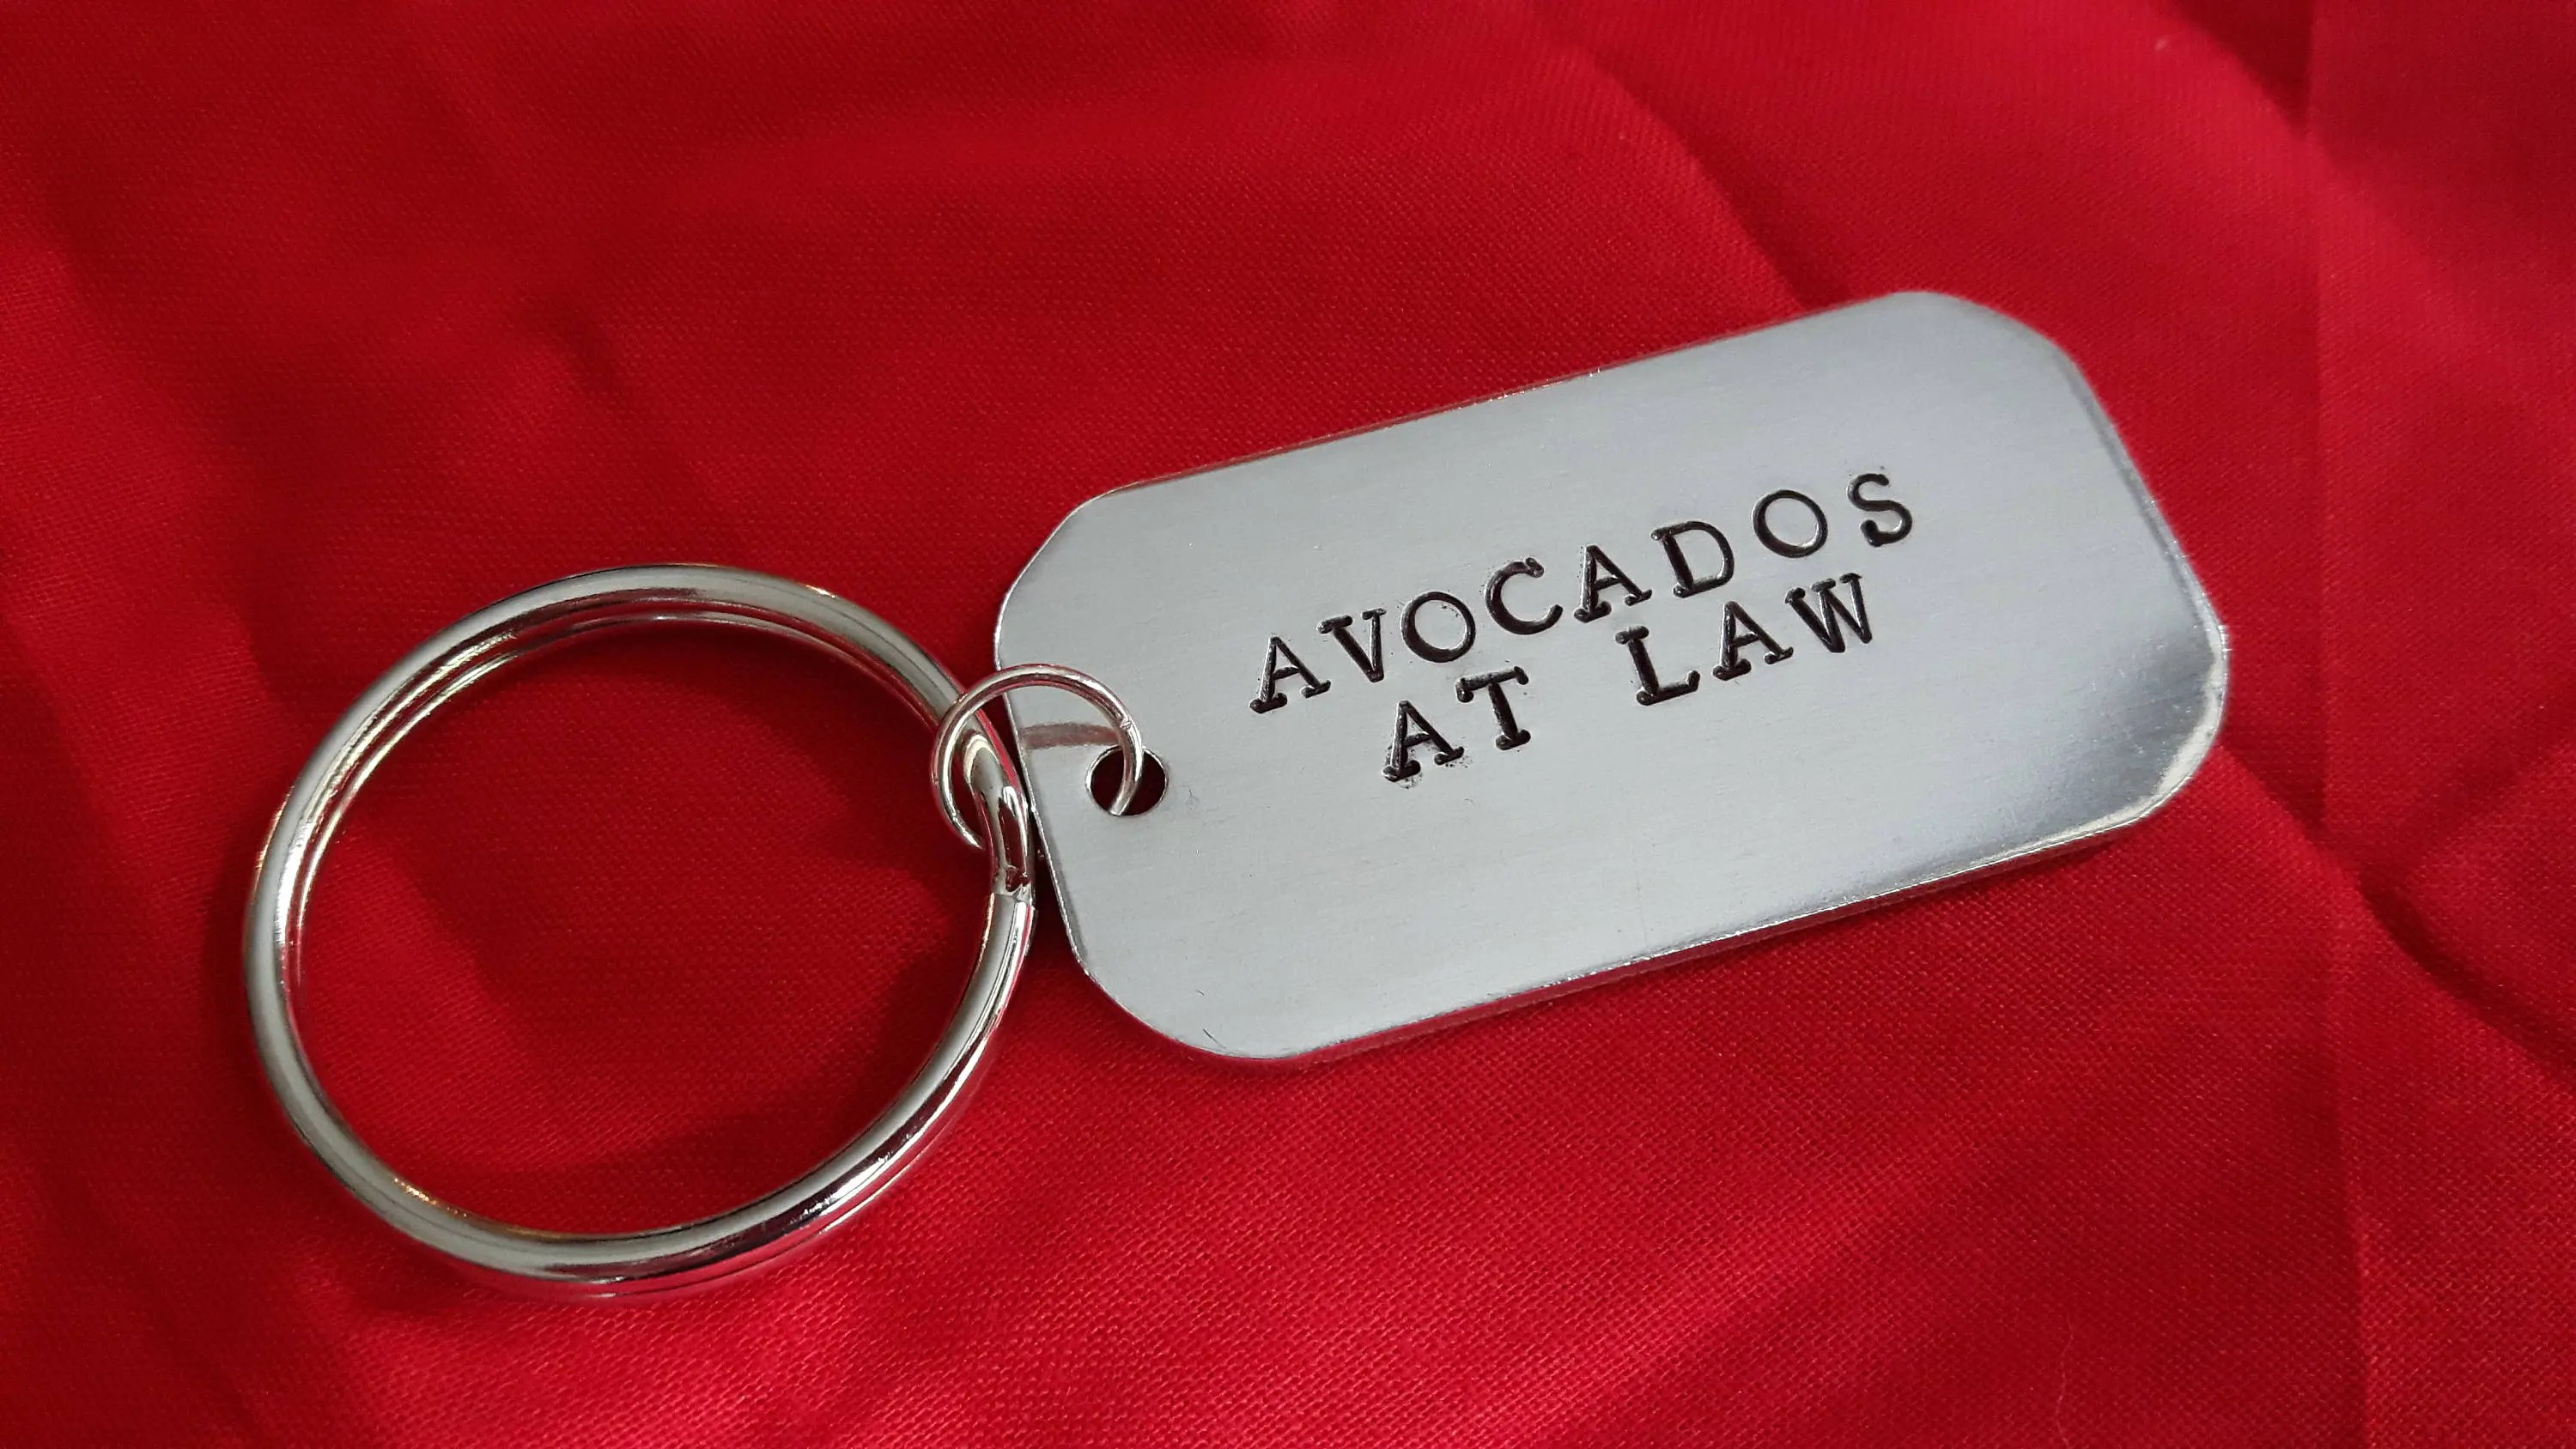 avocados at law daredevil